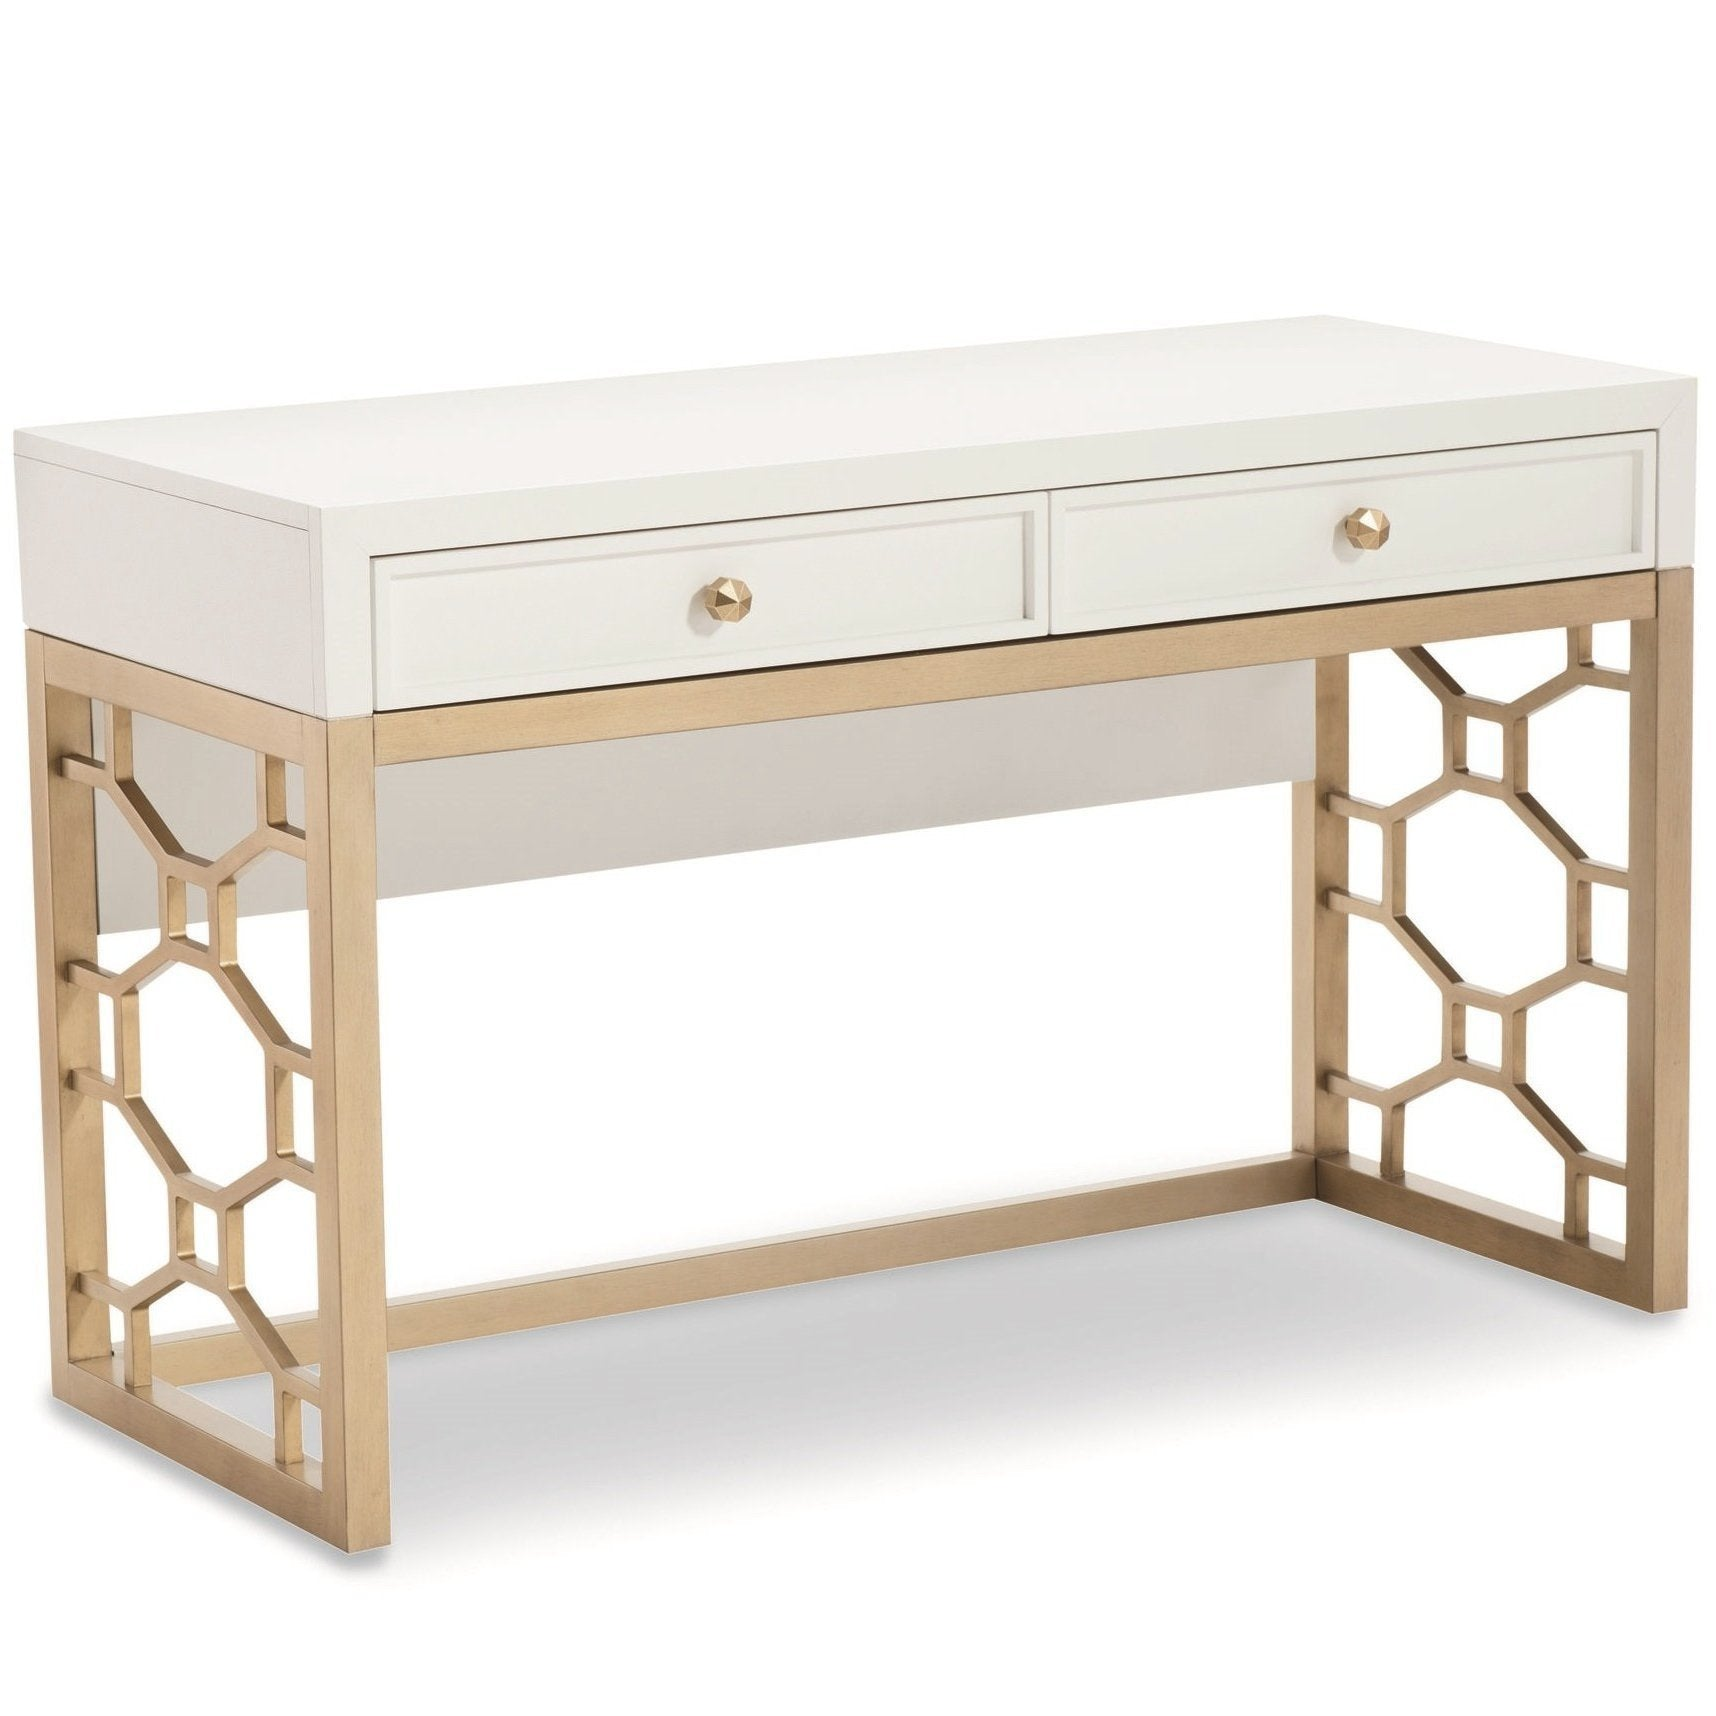 Peachy Rachael Ray Home Chelsea Desk Vanity Pabps2019 Chair Design Images Pabps2019Com